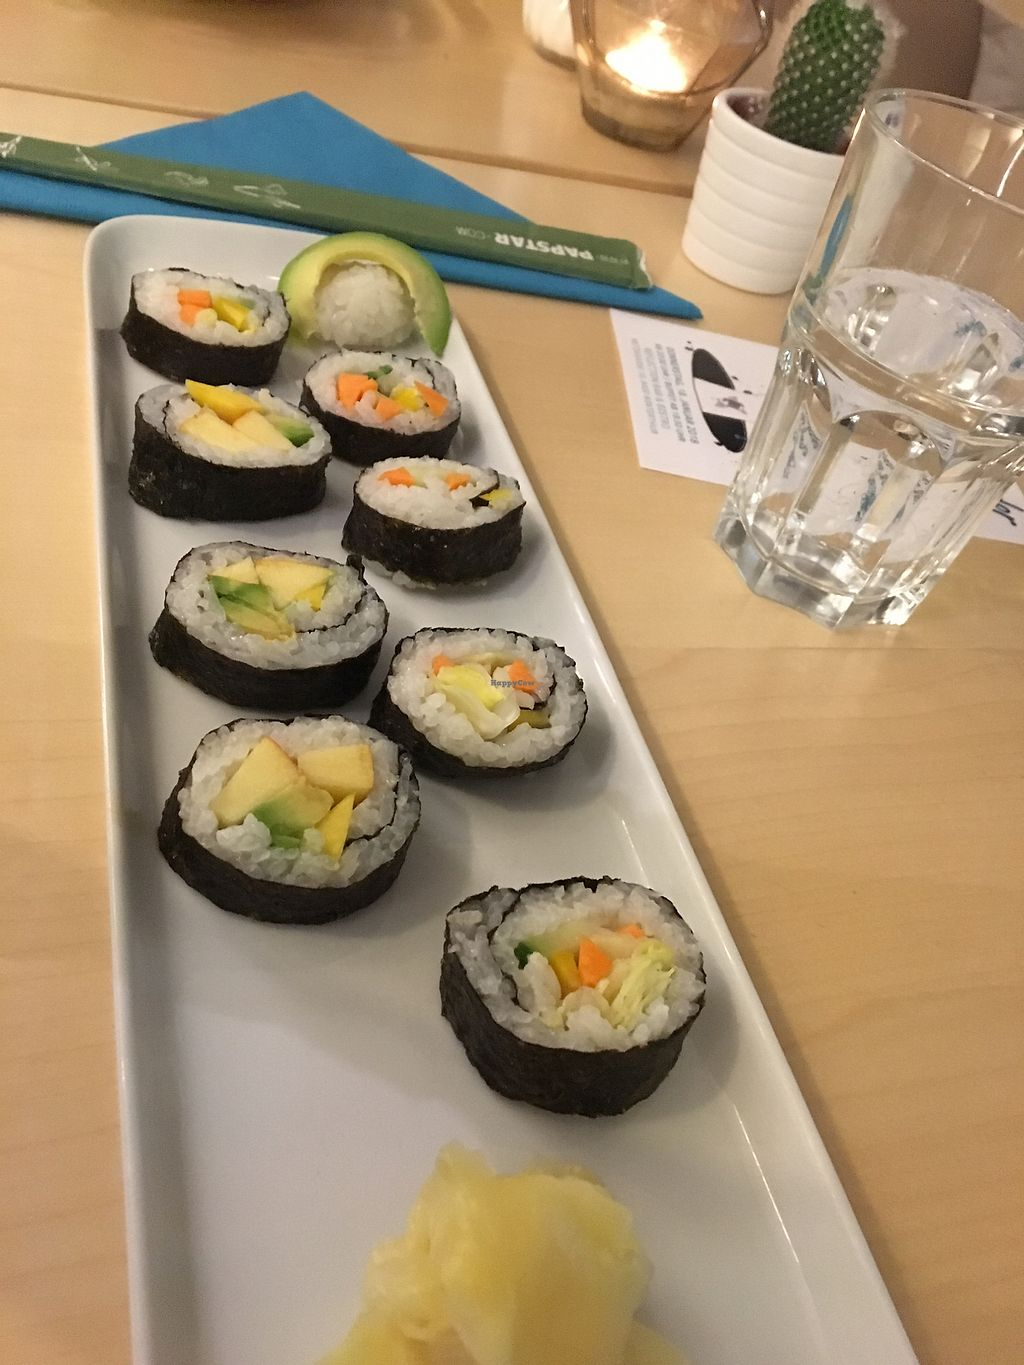 """Photo of Reflection Bar & Bistro  by <a href=""""/members/profile/NakedVegan"""">NakedVegan</a> <br/>Who knew apples & mangos would make great Sushi! <br/> January 8, 2018  - <a href='/contact/abuse/image/86866/344514'>Report</a>"""